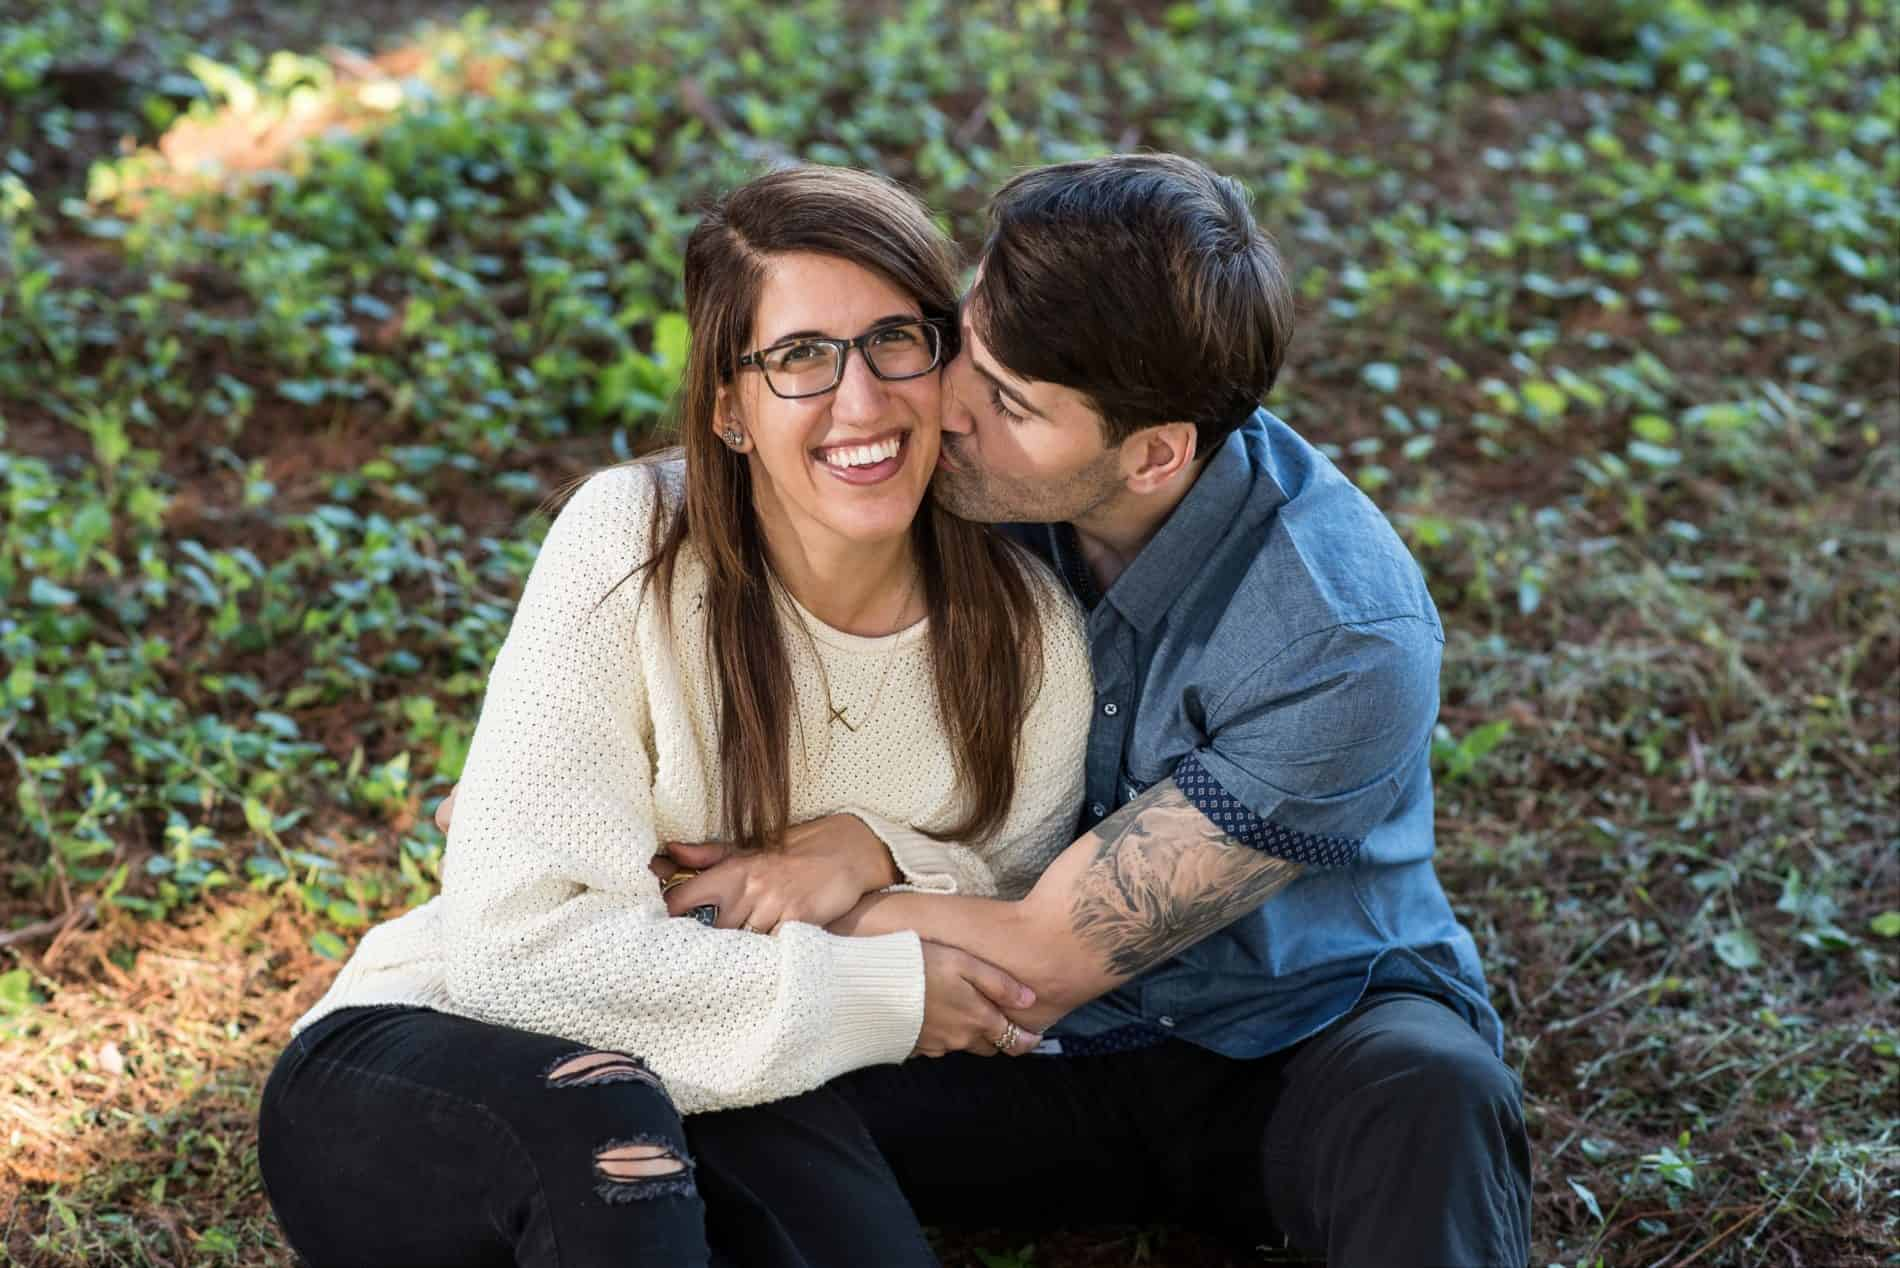 Orlando Engaged Couple in a Park